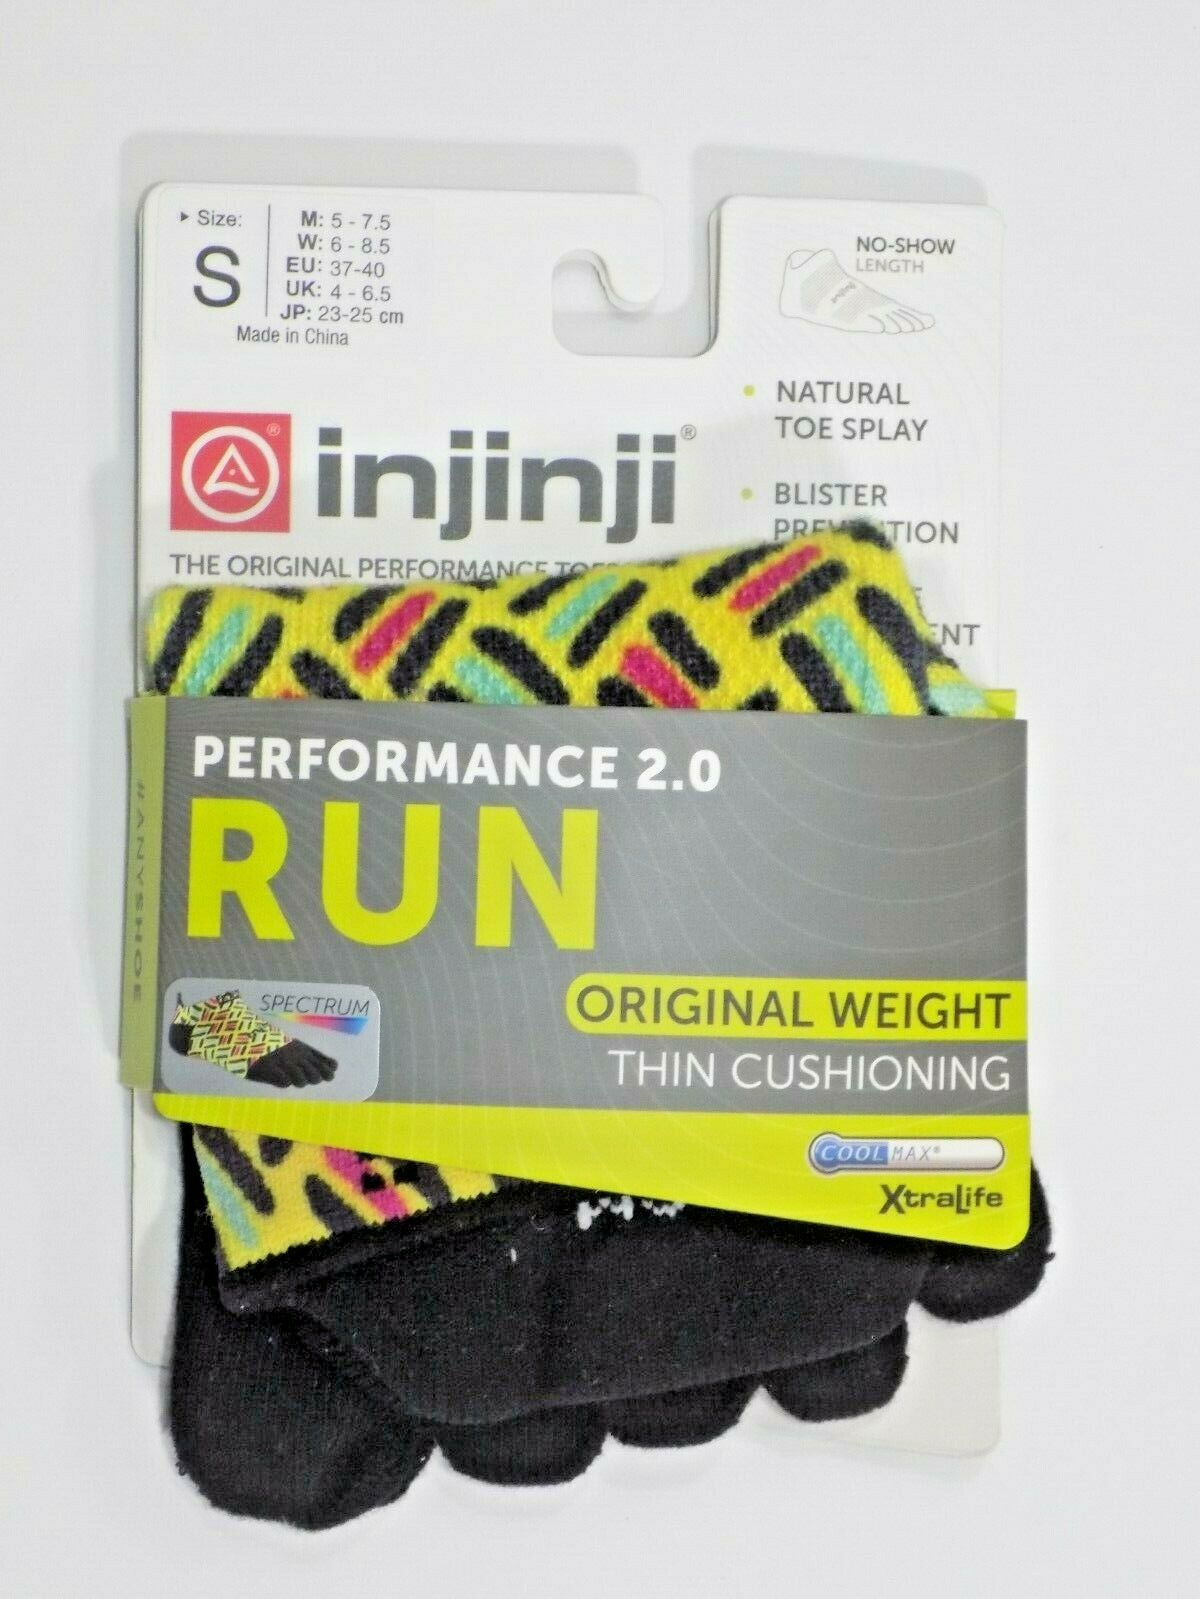 Injinji Run Original Weight No-Show COOLMAX® Technology - S